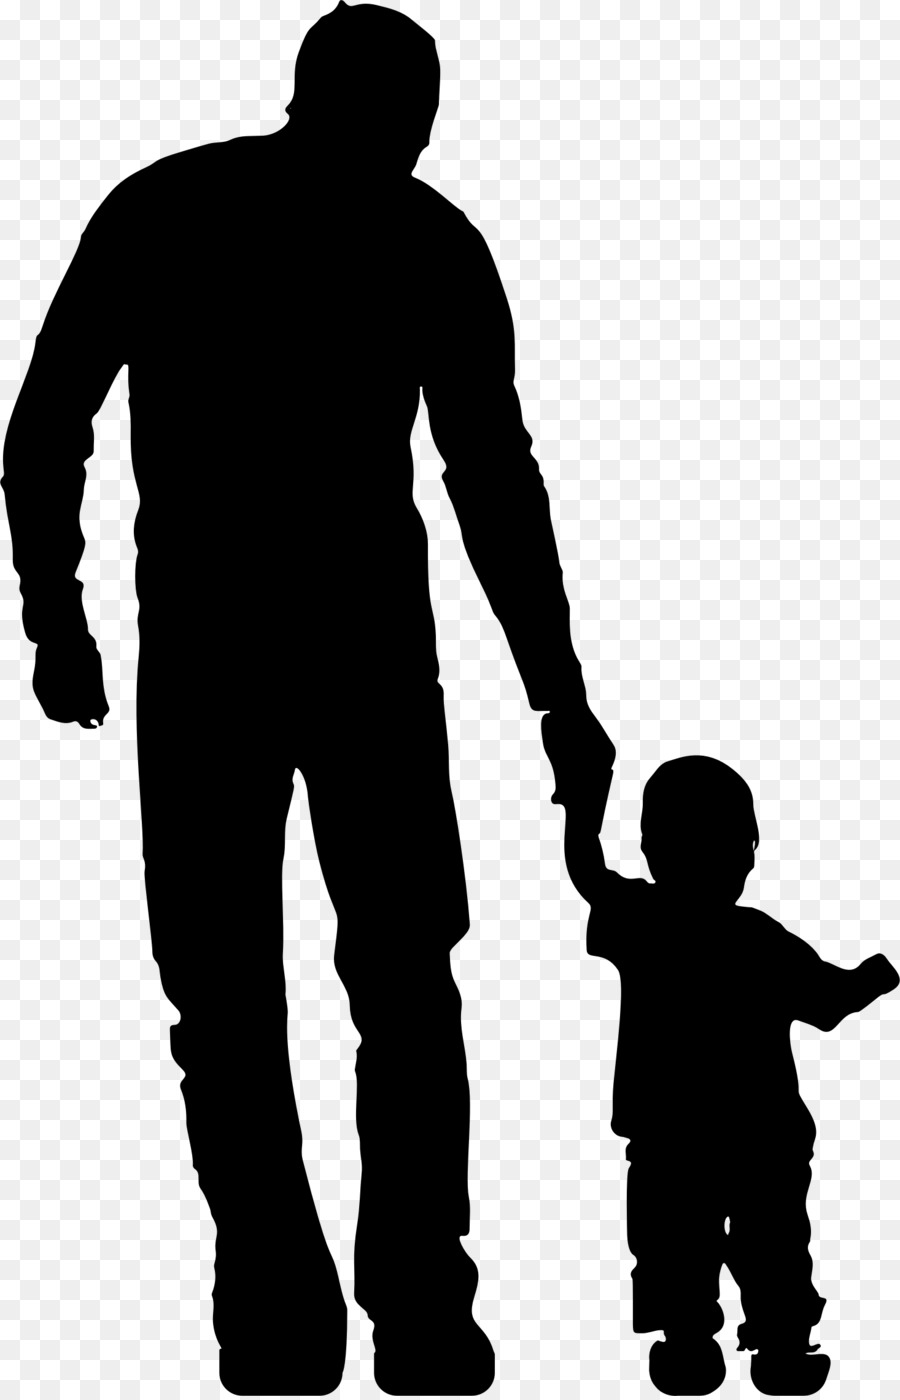 Png Father Son & Free Father Son.png Transparent Images #25496.